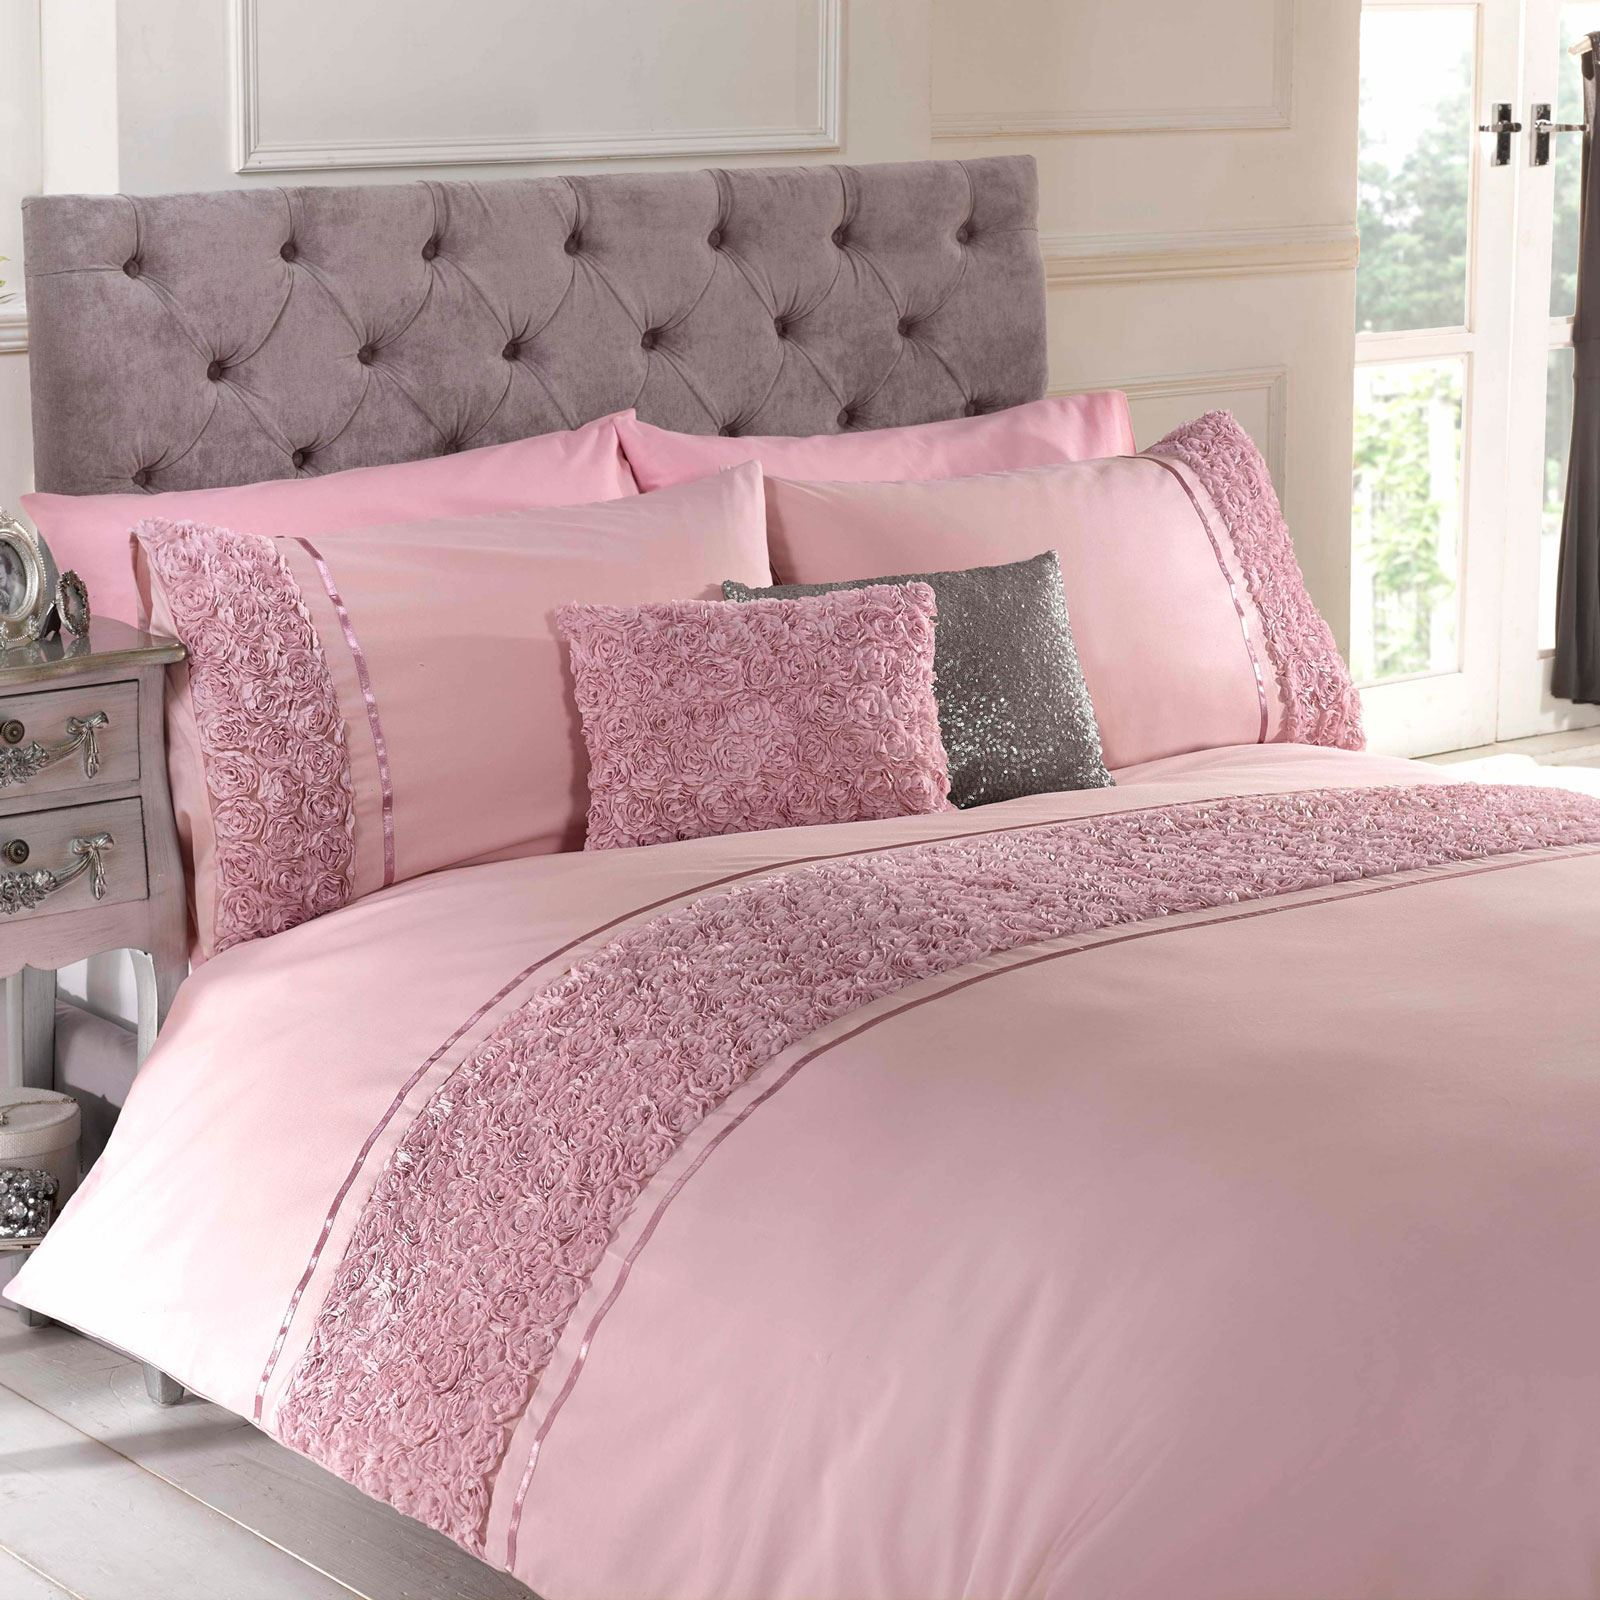 Blush Pink Quilt Cover Details About Limoges Rose Ruffle Blush Pink Super King Size Duvet Cover Pillowcase Set